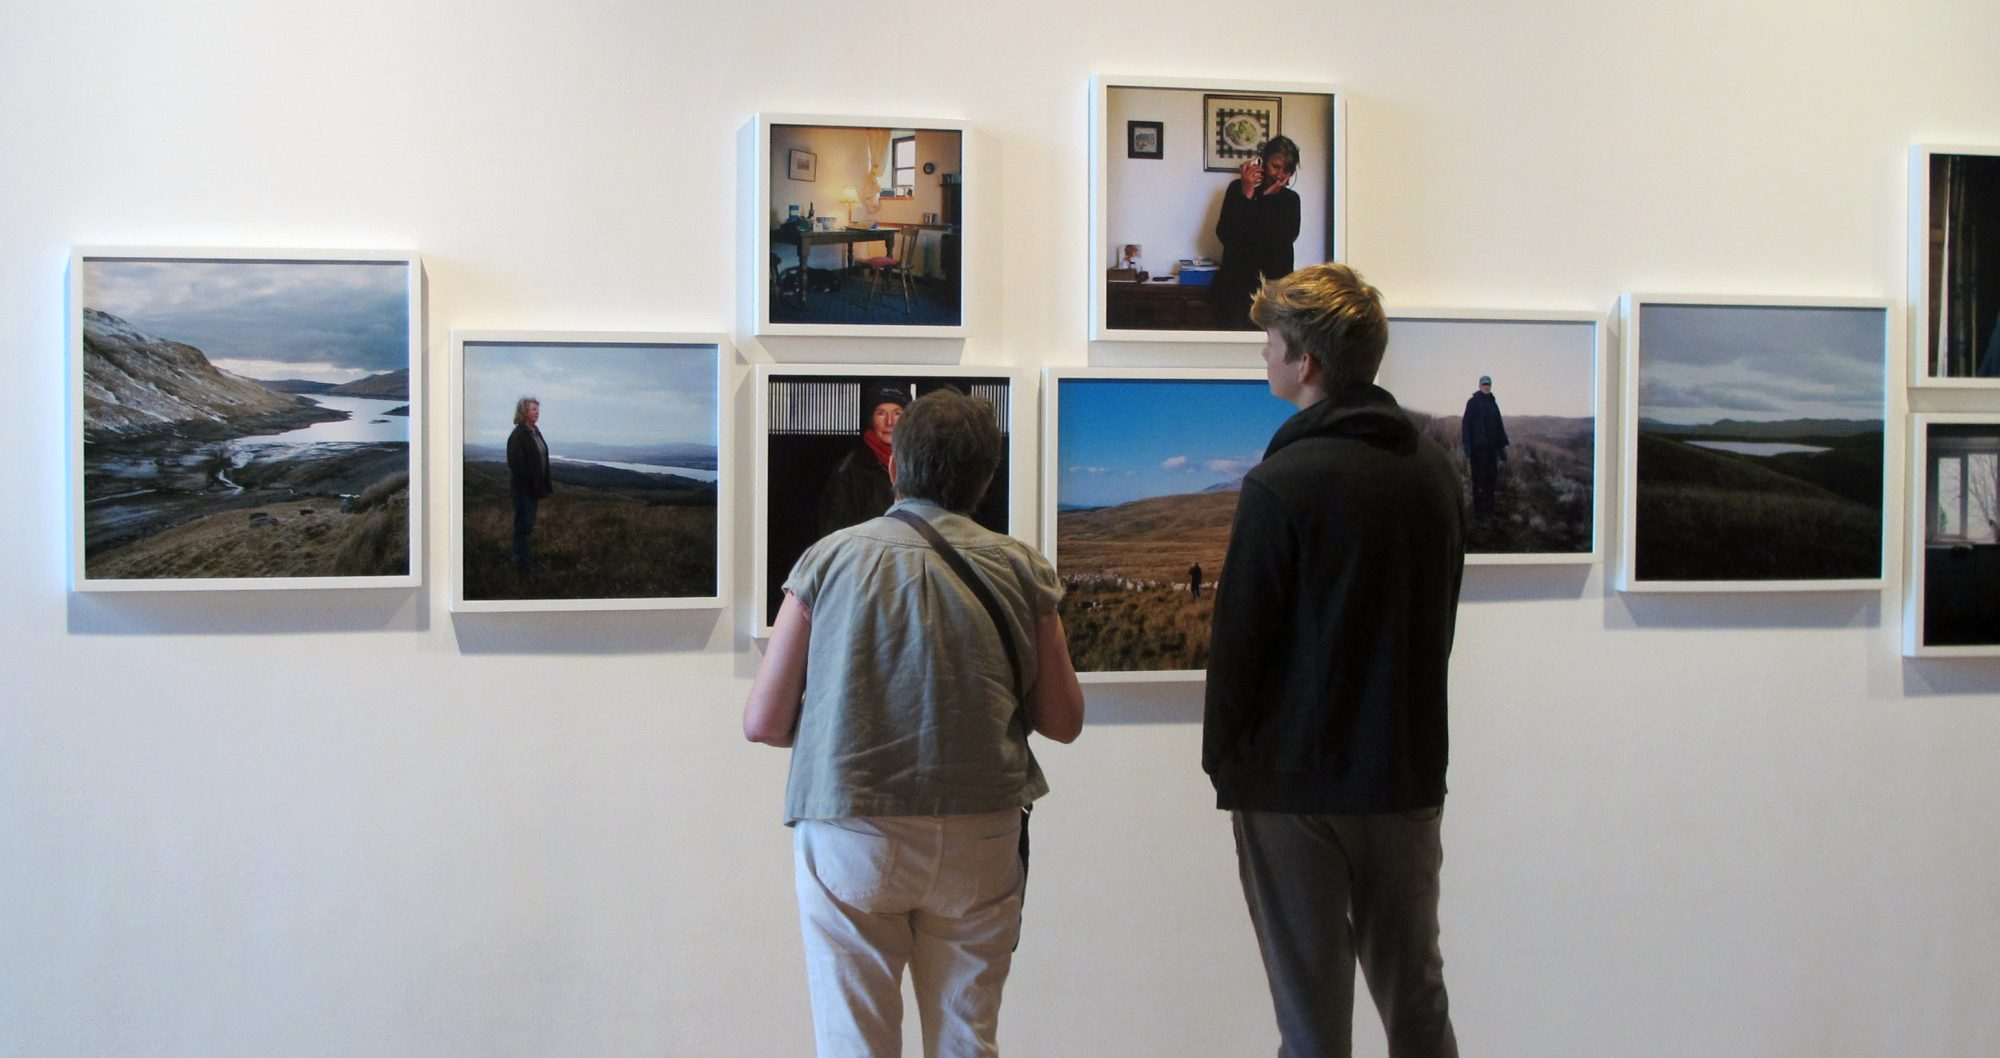 Installation view of Beyond the Border 2